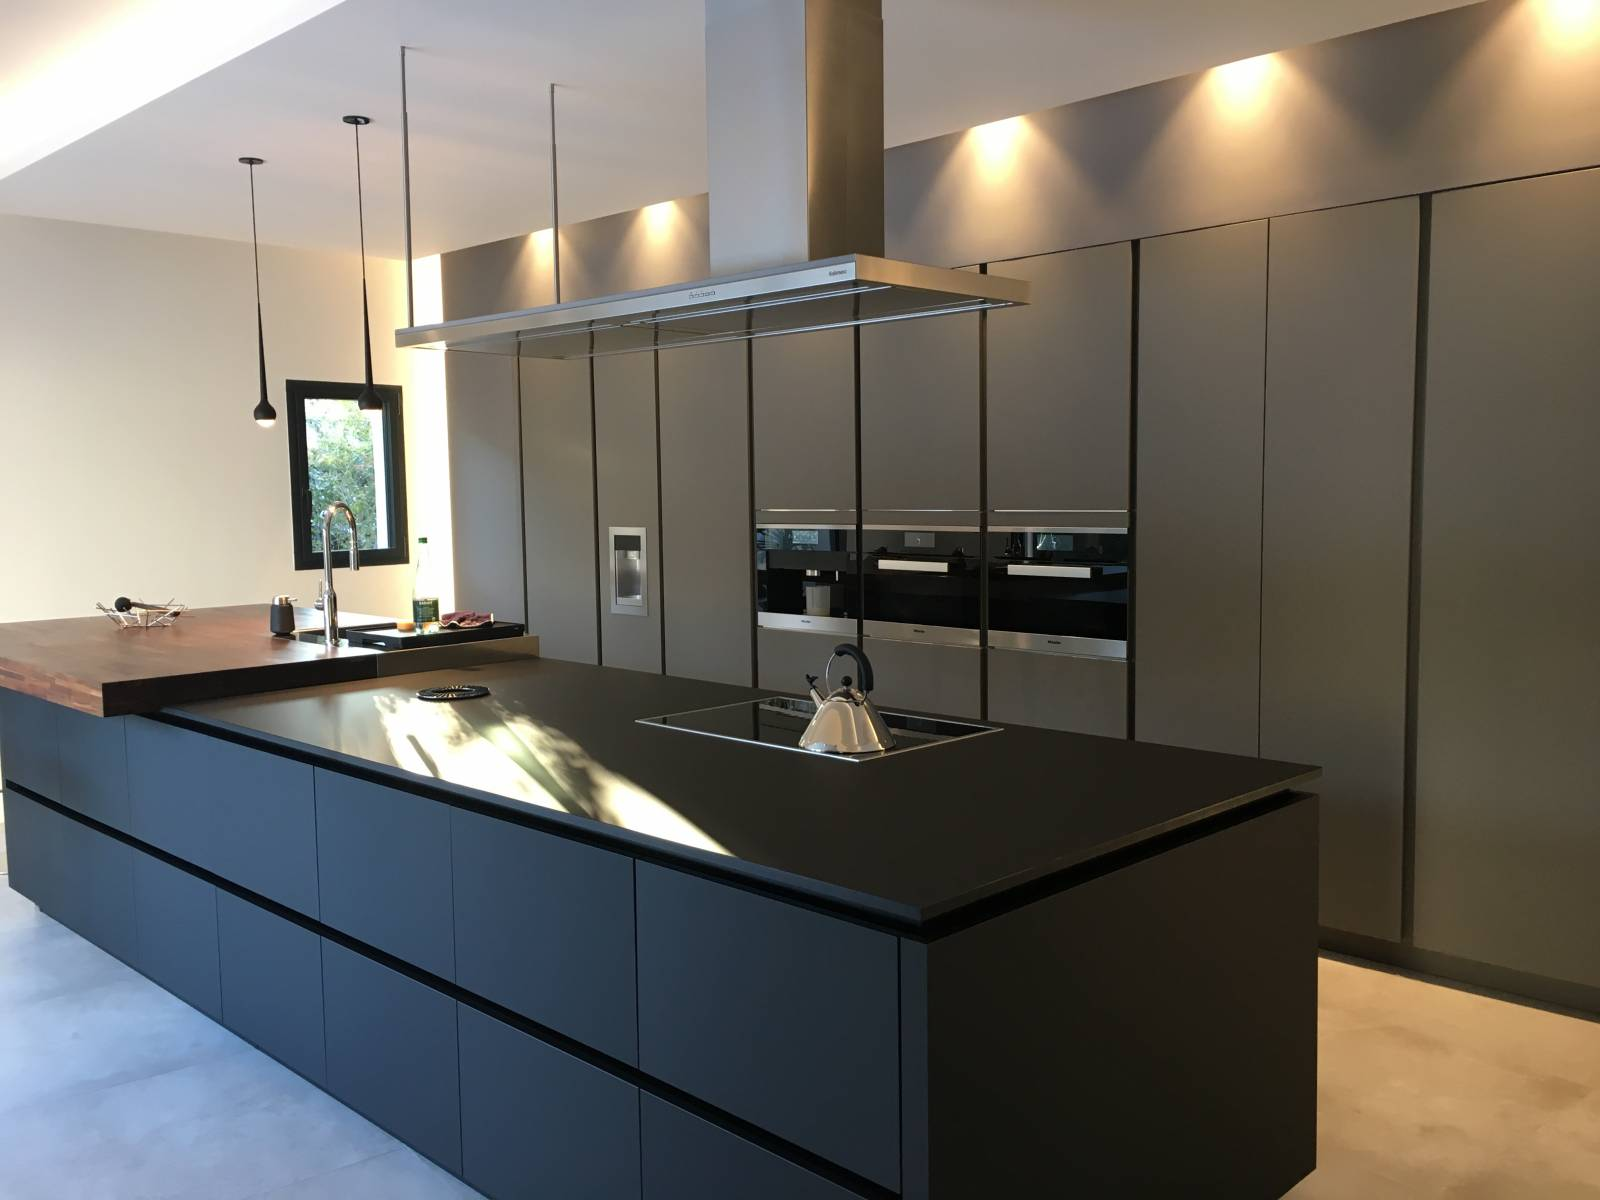 cuisine moderne en fenix avec plan de travail en noyer am ricain bourg en bresse il bagno. Black Bedroom Furniture Sets. Home Design Ideas